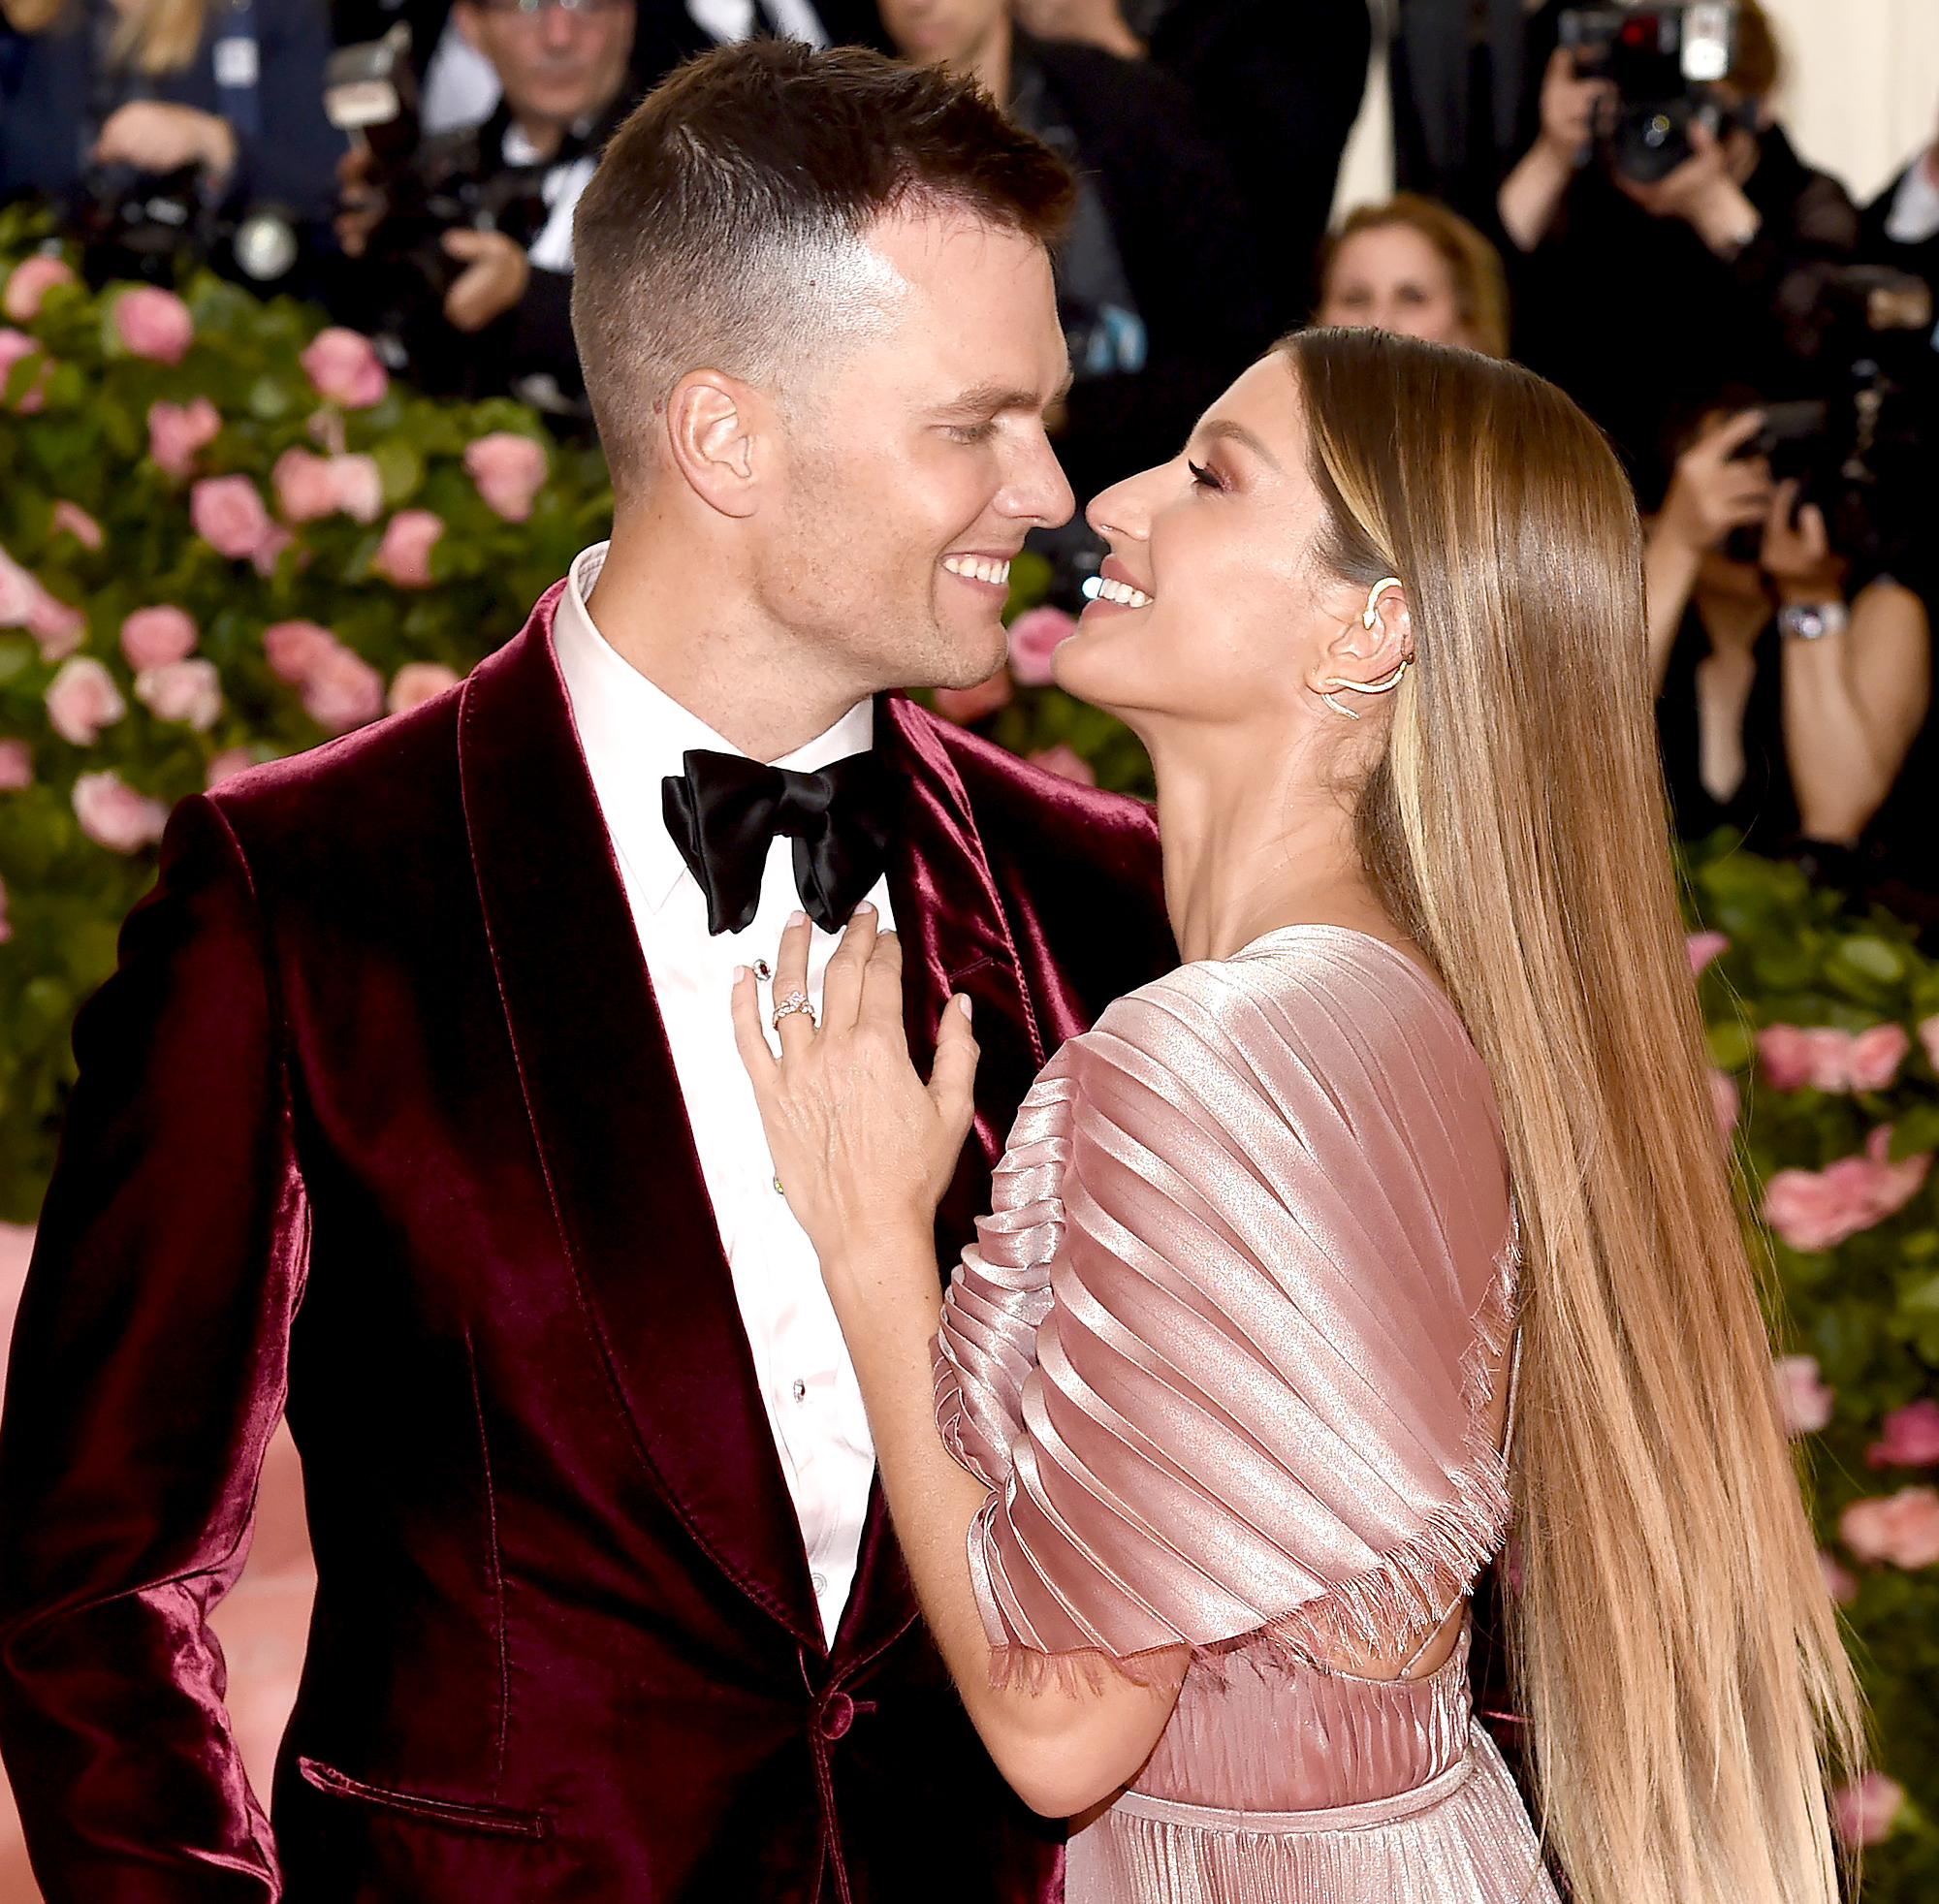 Tom Brady and Gisele Bundchen secret to happy marriage